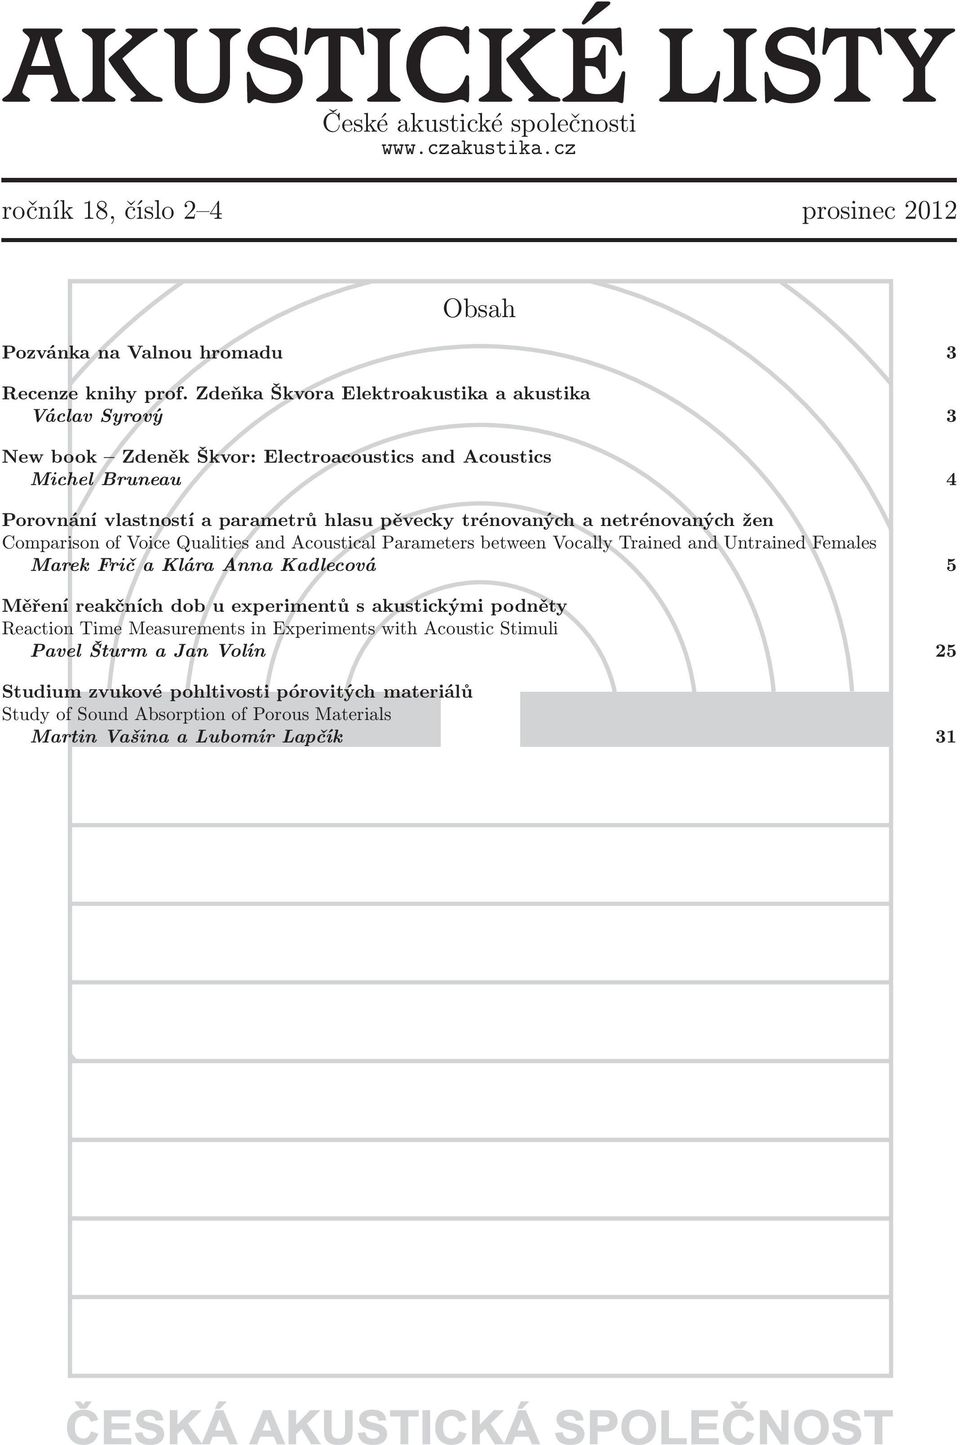 netrénovaných žen Comparison of Voice Qualities and Acoustical Parameters between Vocally Trained and Untrained Females Marek Frič a Klára Anna Kadlecová 5 Měření reakčních dob u